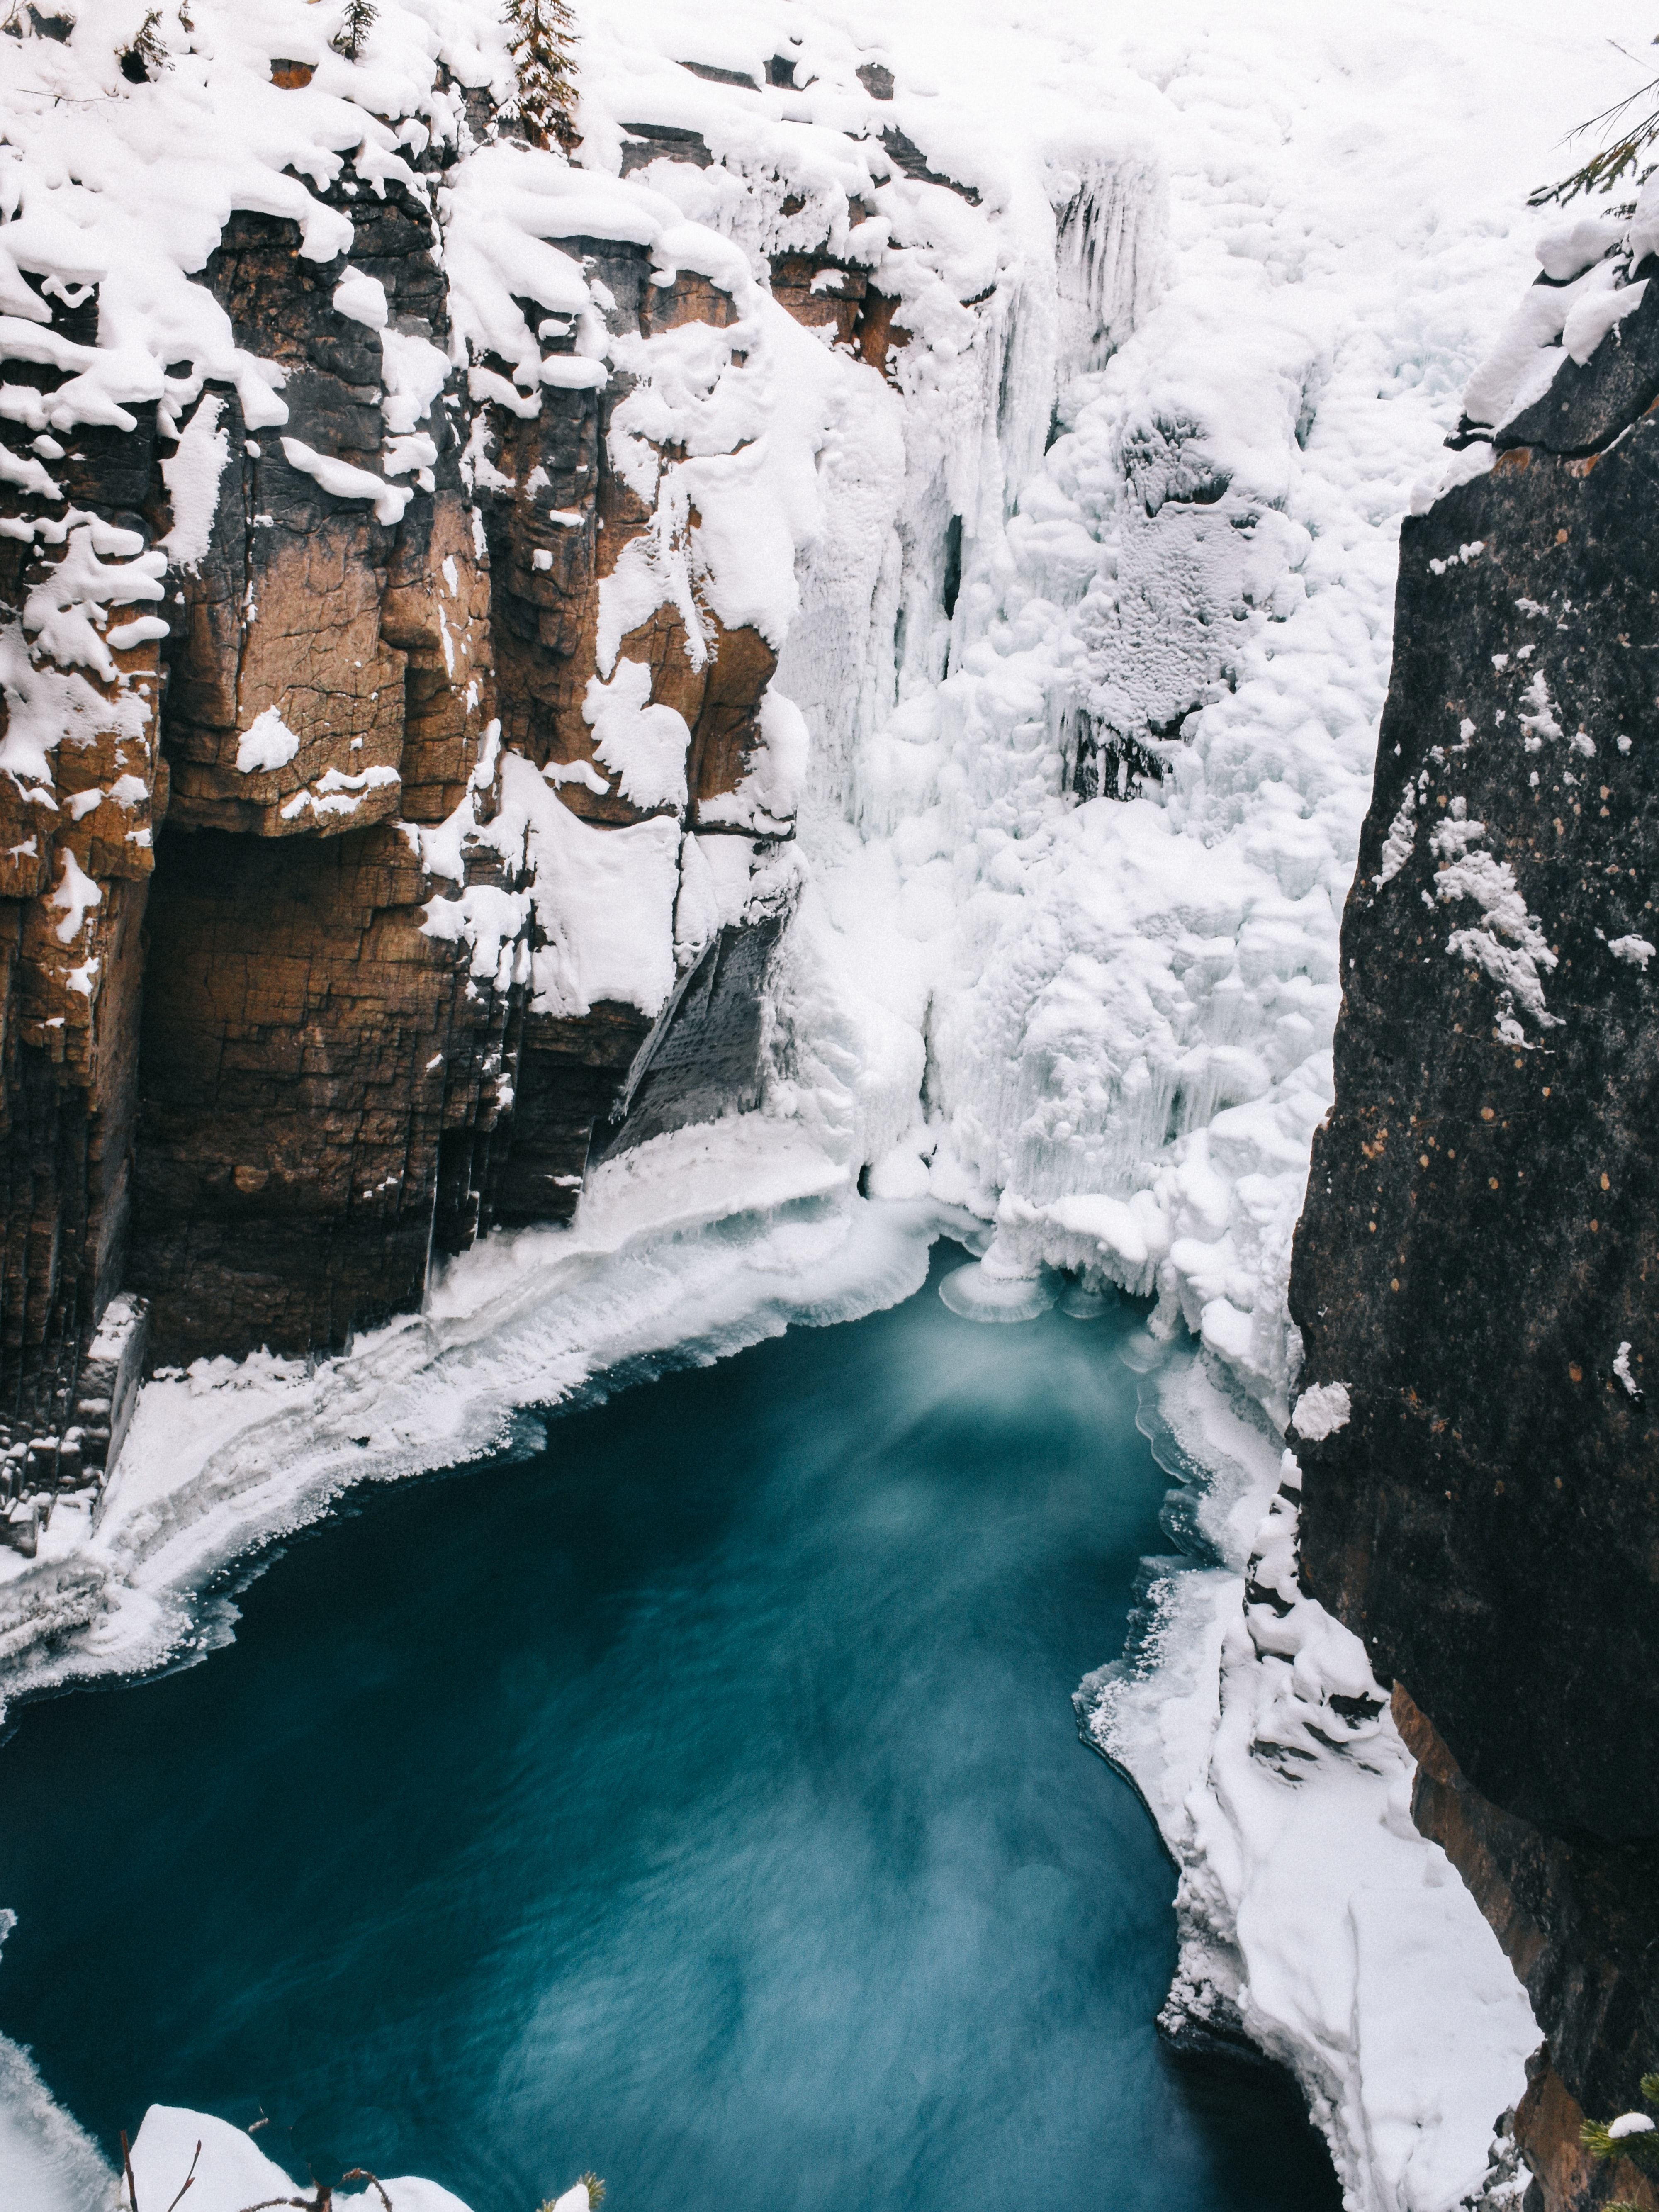 An icy mountain cliff is split by a frozen stream of water